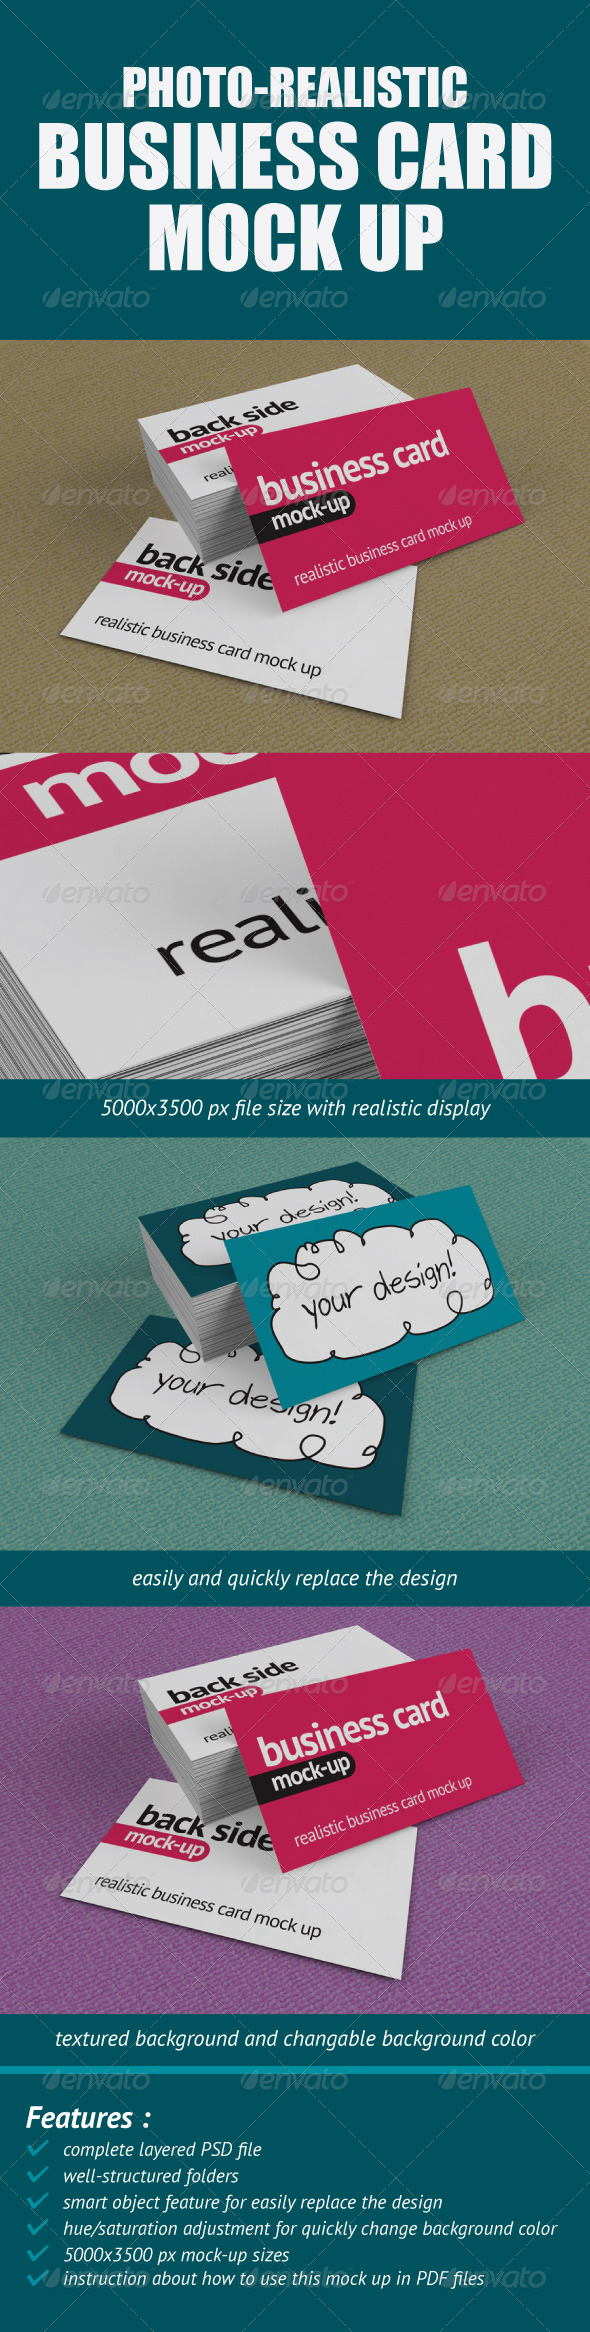 GraphicRiver Photo-Realistic Business Card Mock-Up 549753